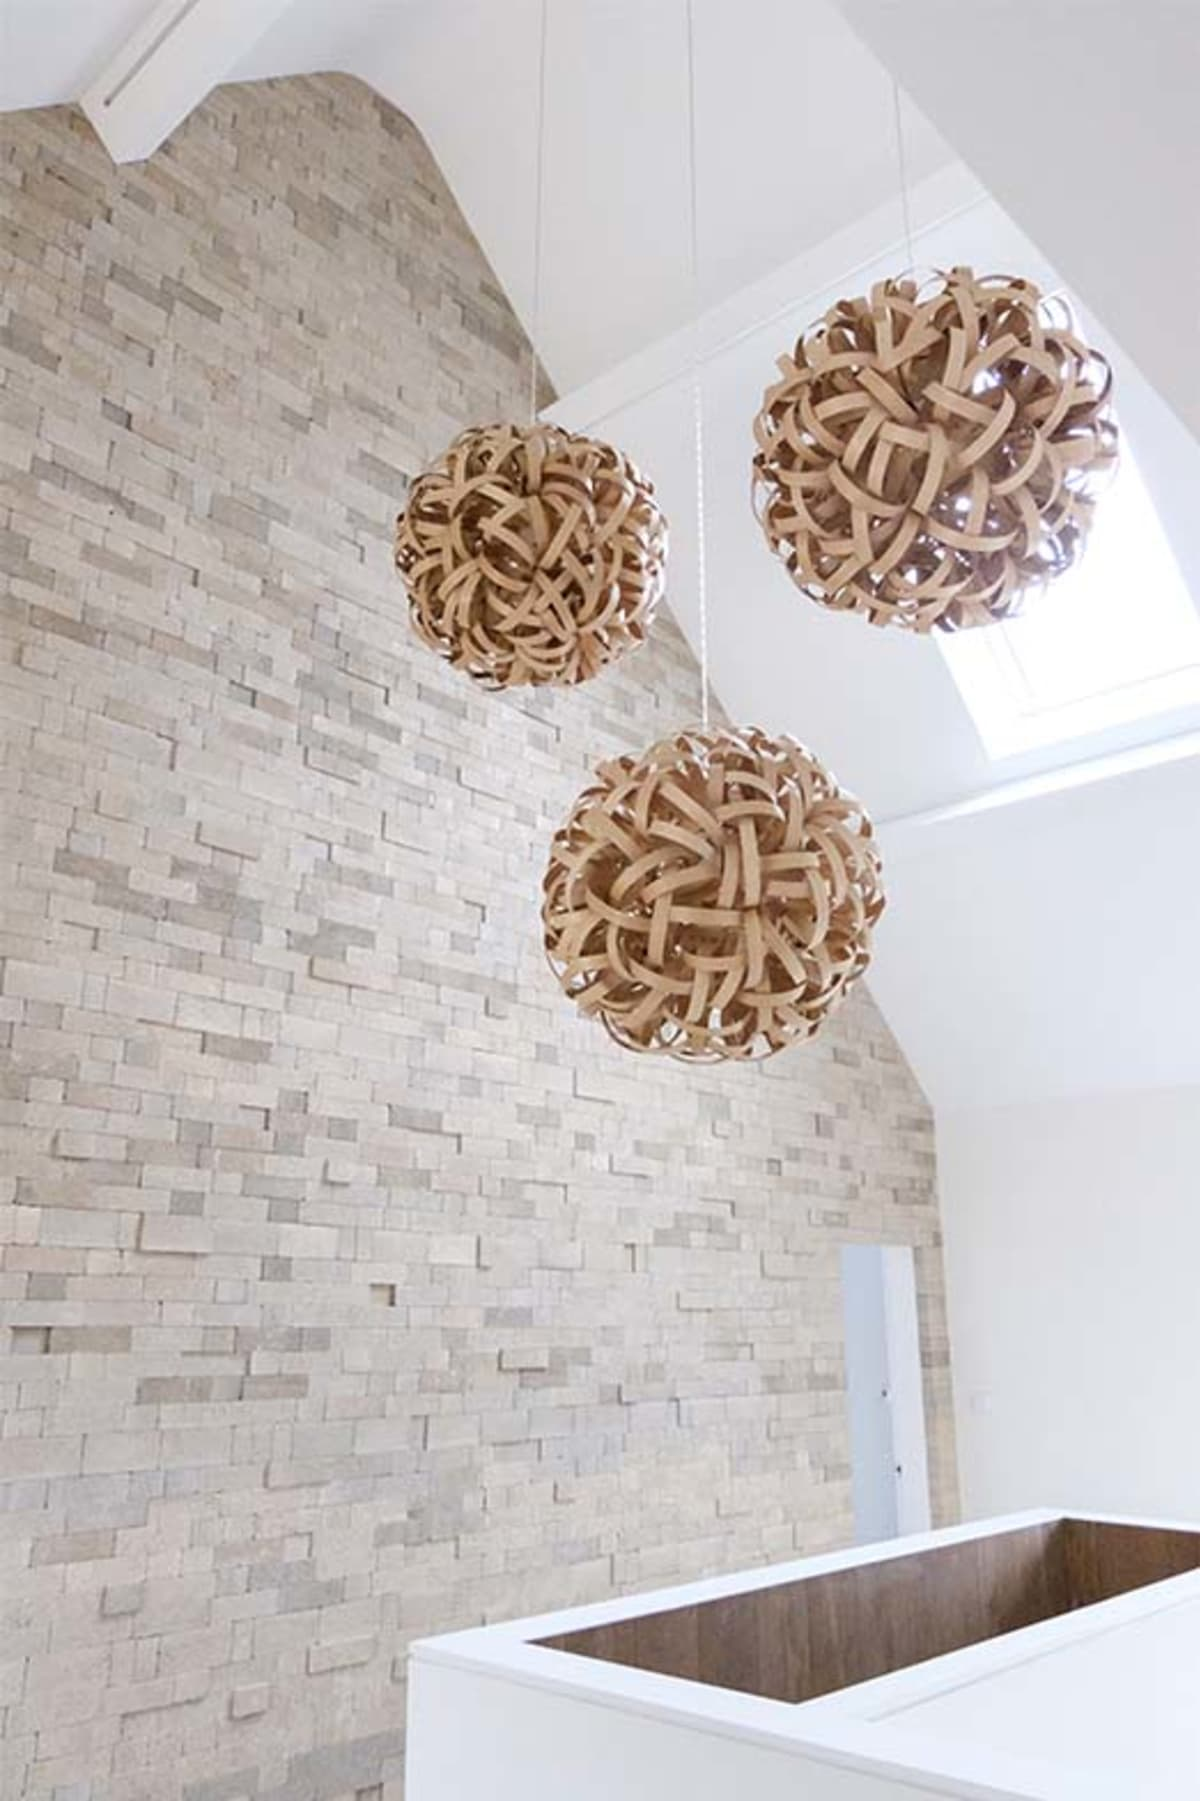 Internal brick wall with hanging lights